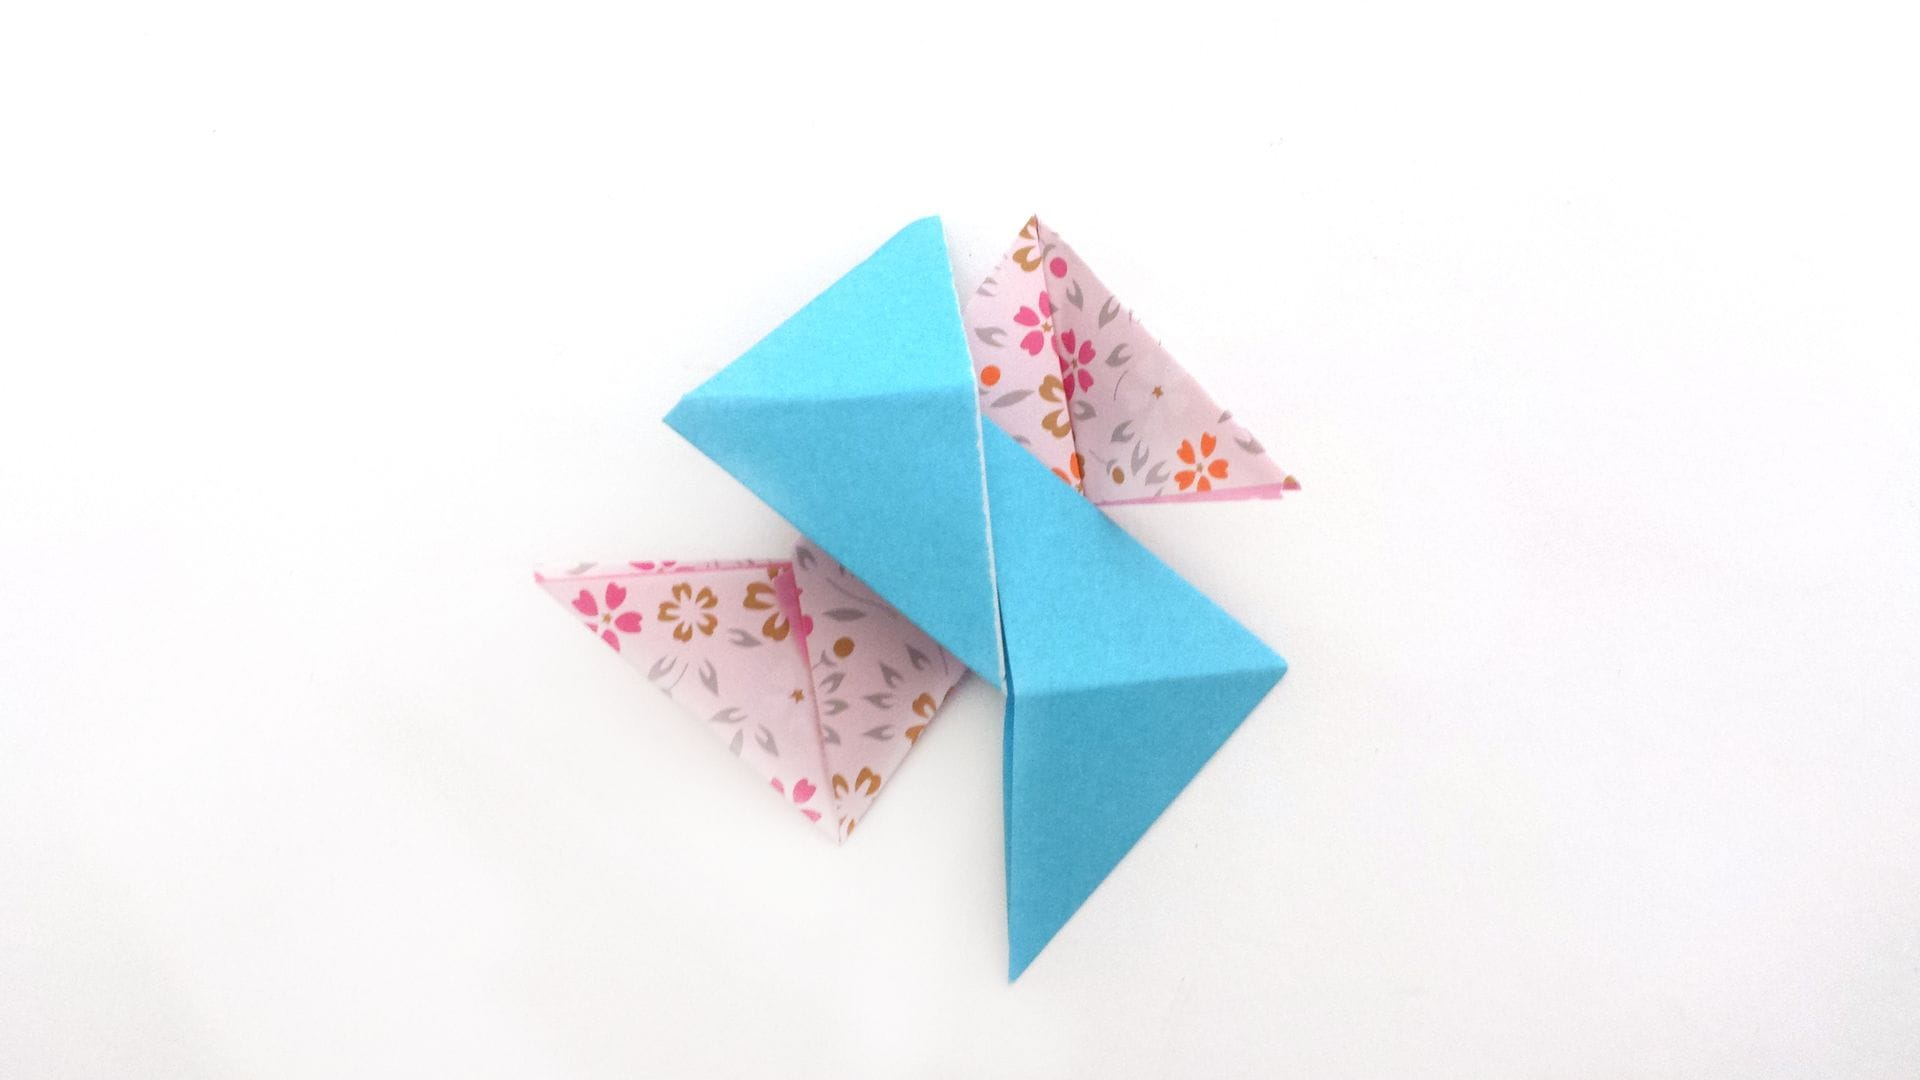 Origami Fidget Spinner - photo#21